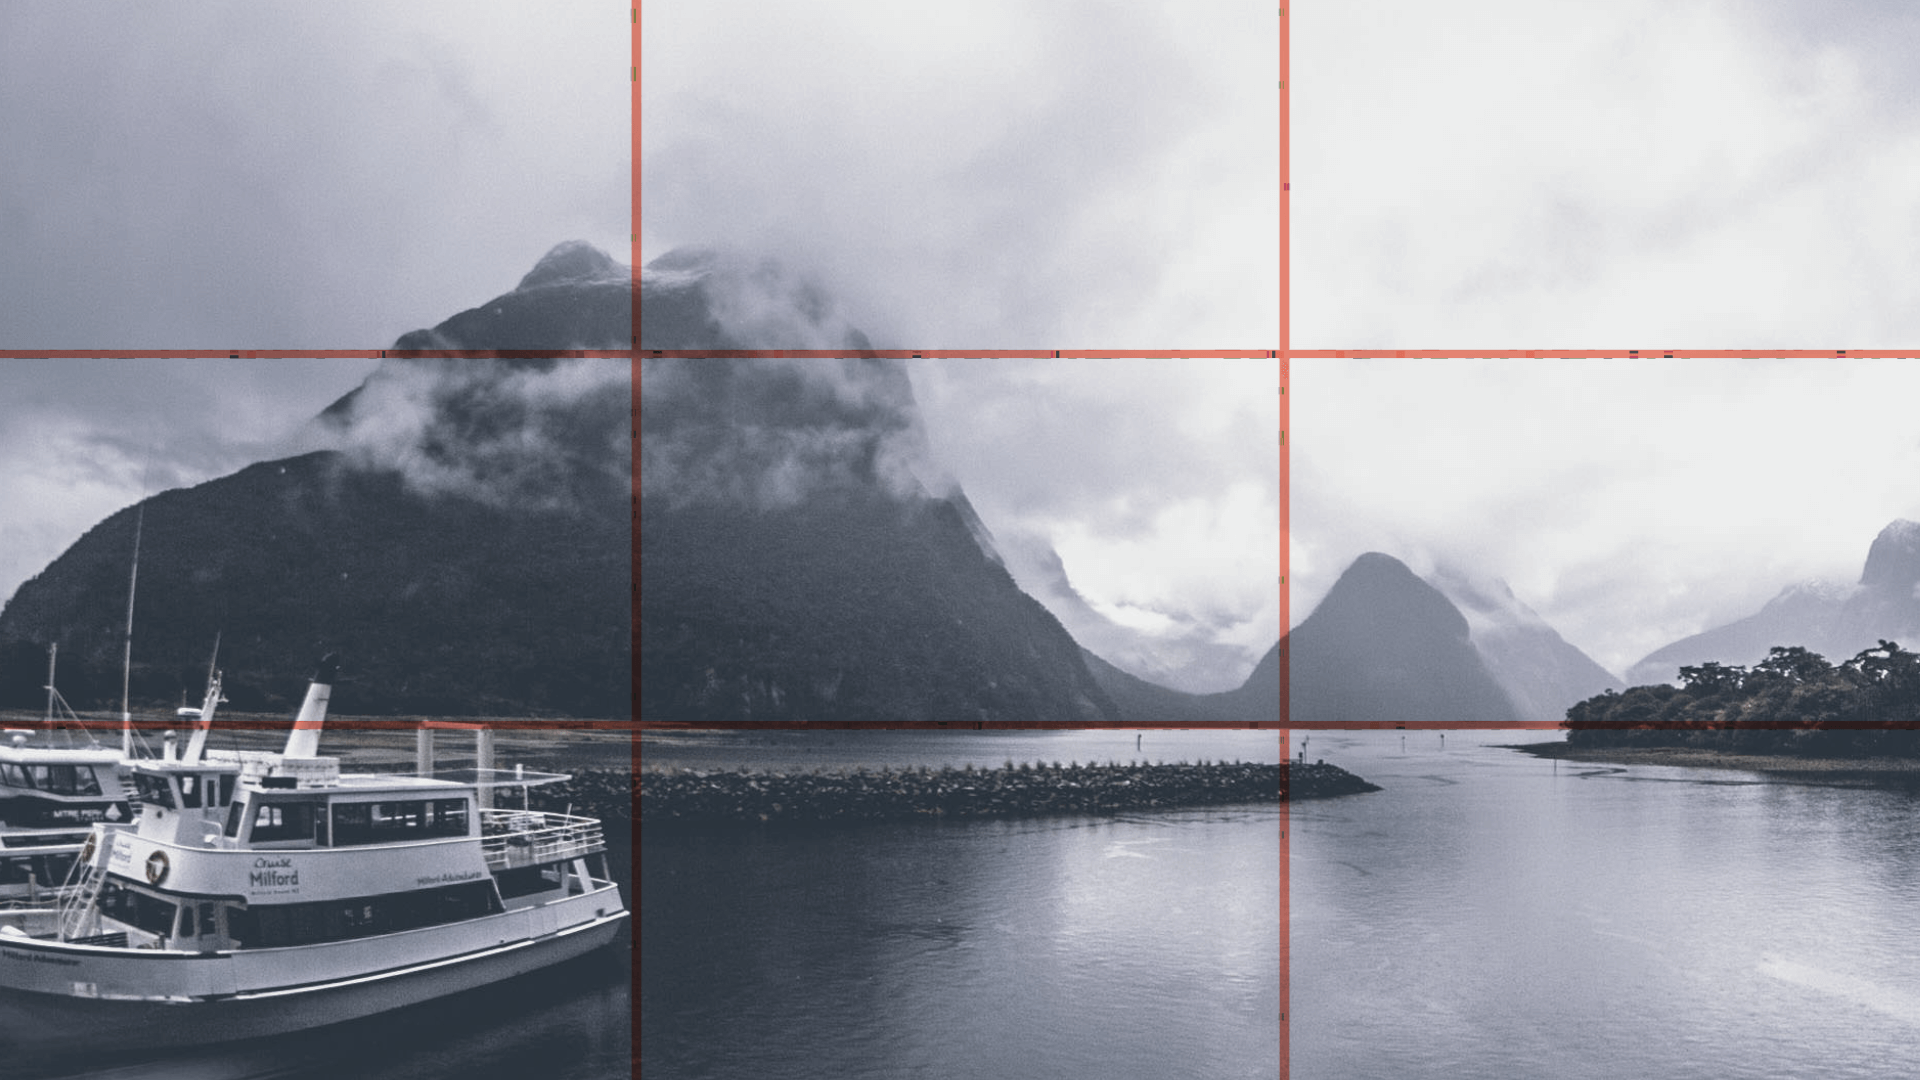 composition photoshop rule of thirds